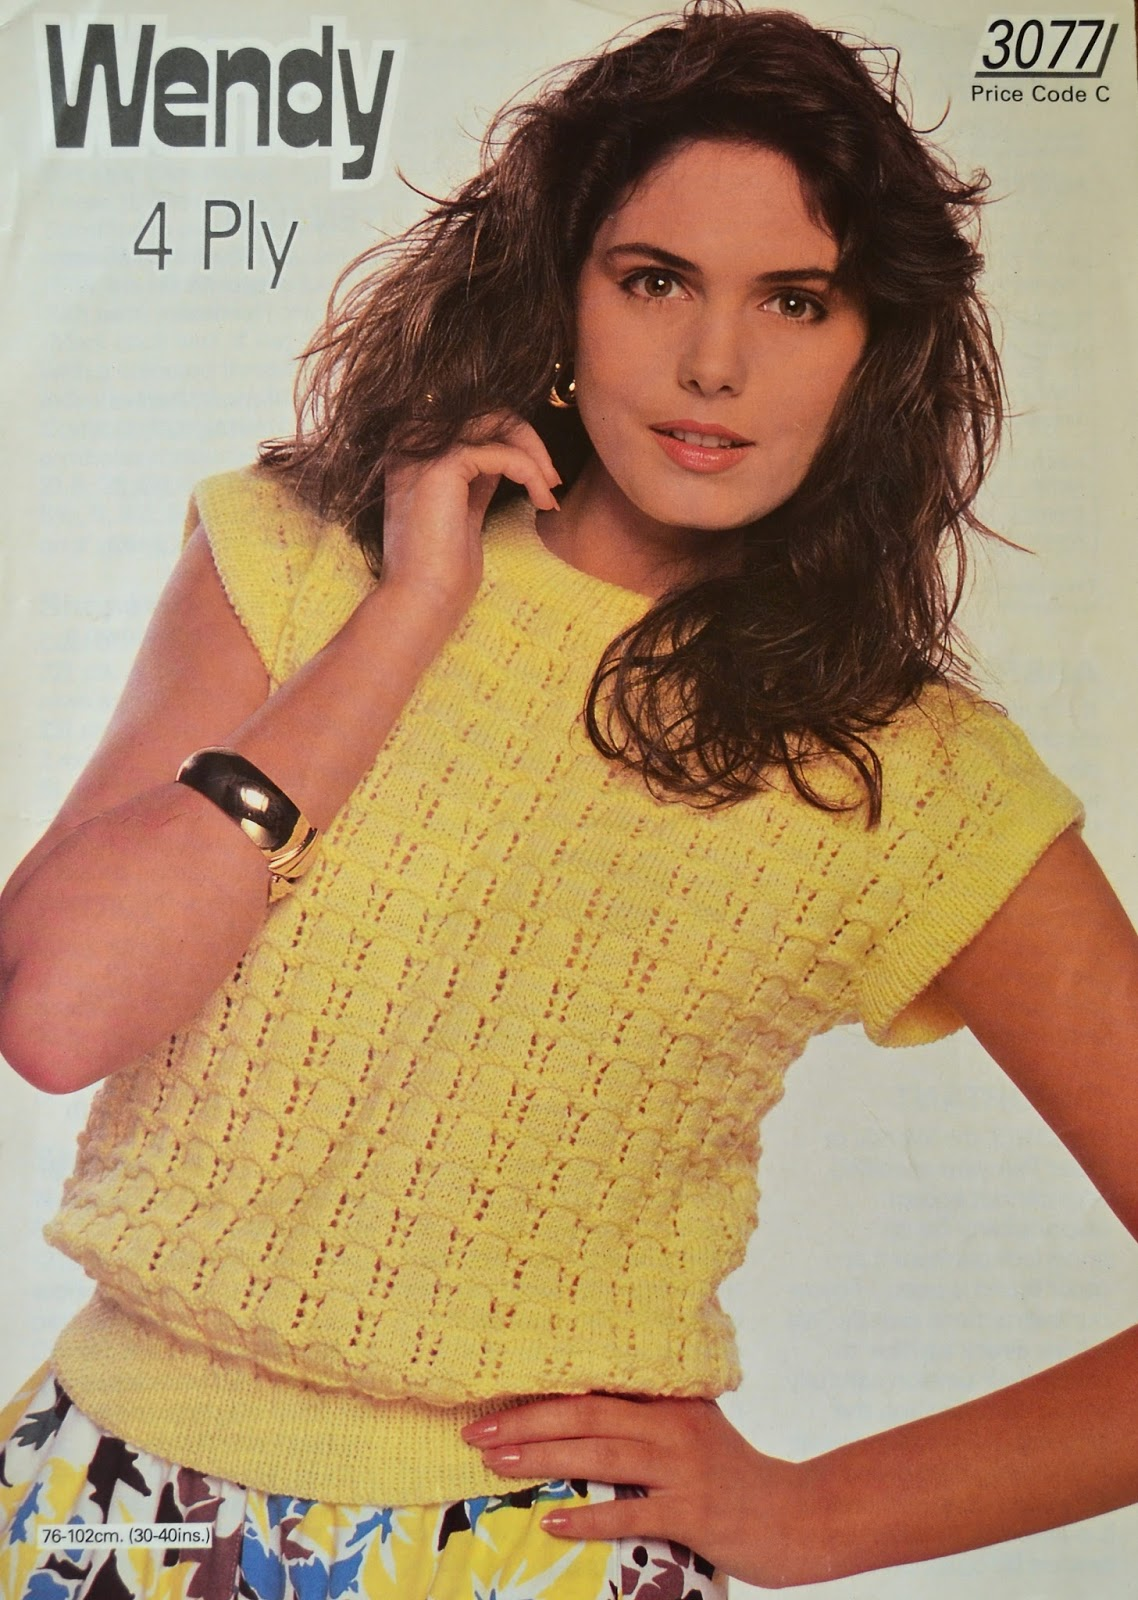 1c65d970f3d6 Vintage 1980s Knitting Pattern - Wendy Ladies  Top Knitting Pattern no 3077